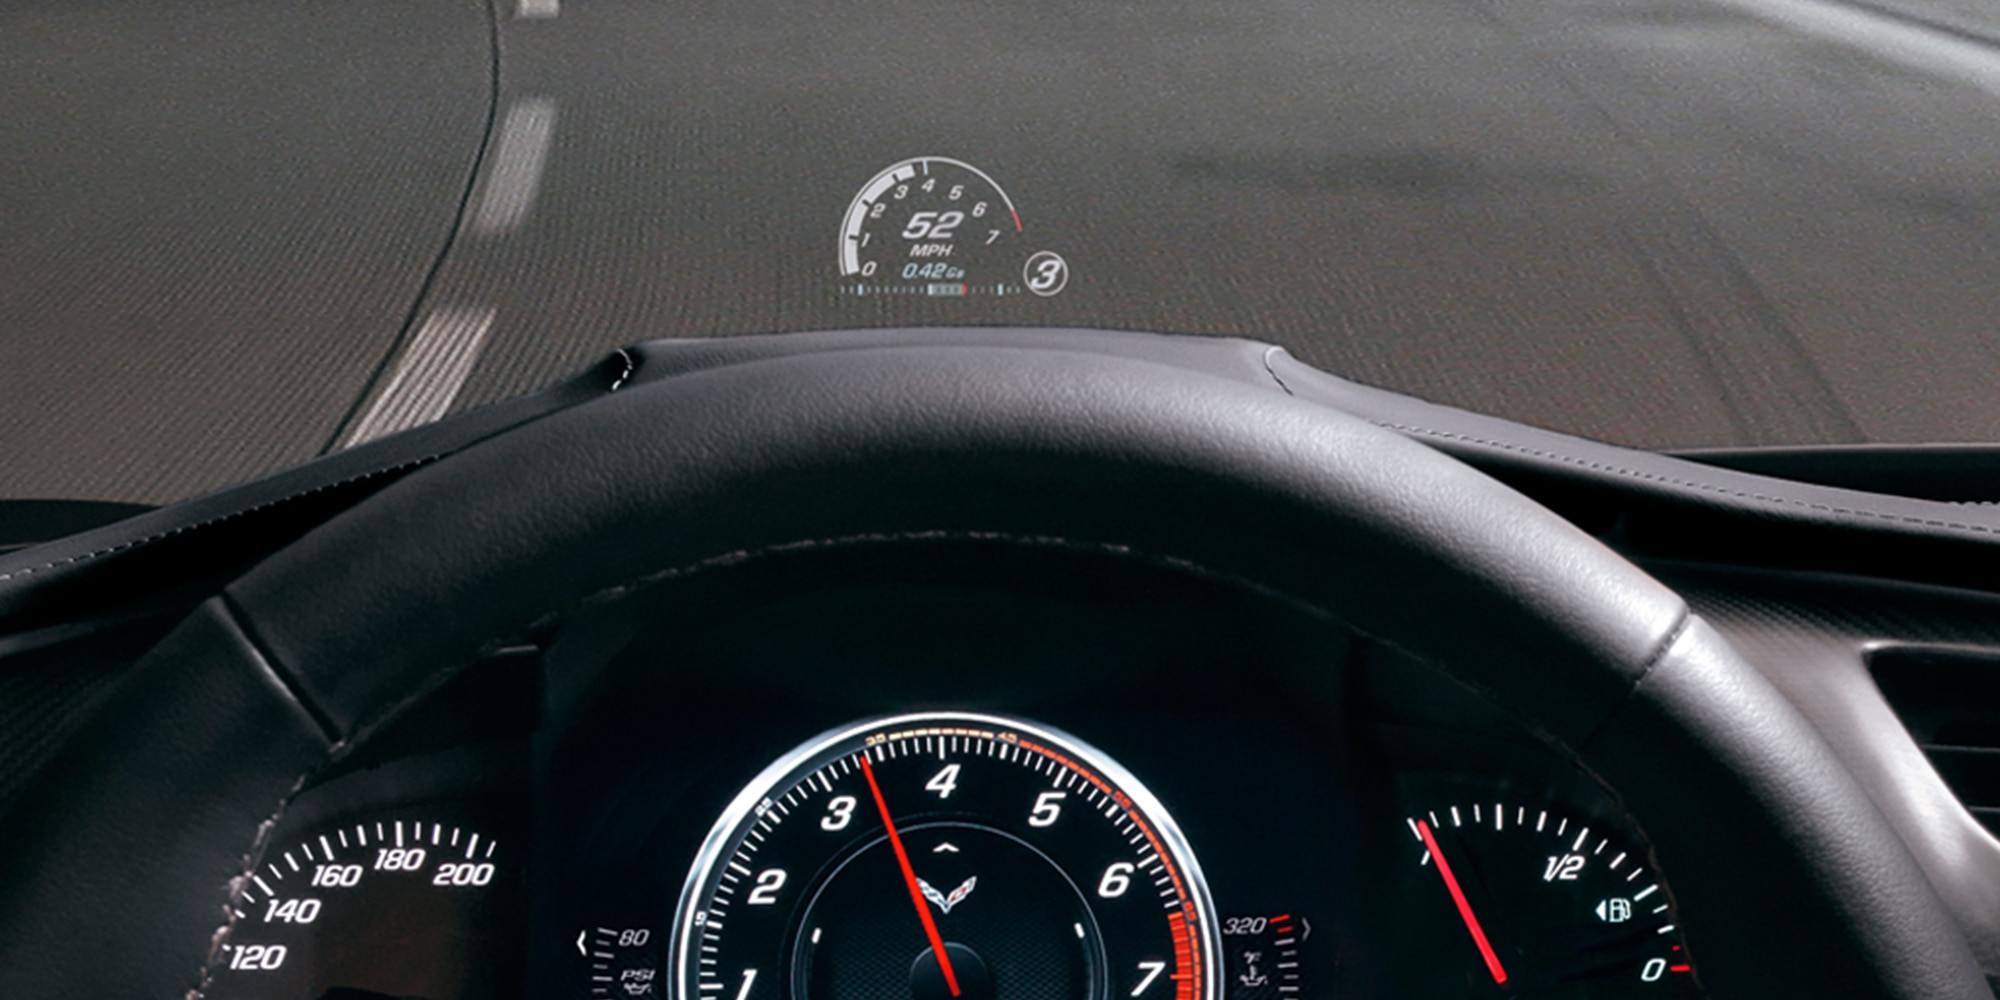 Auto deportivo Corvette 2017: Head-Up Display